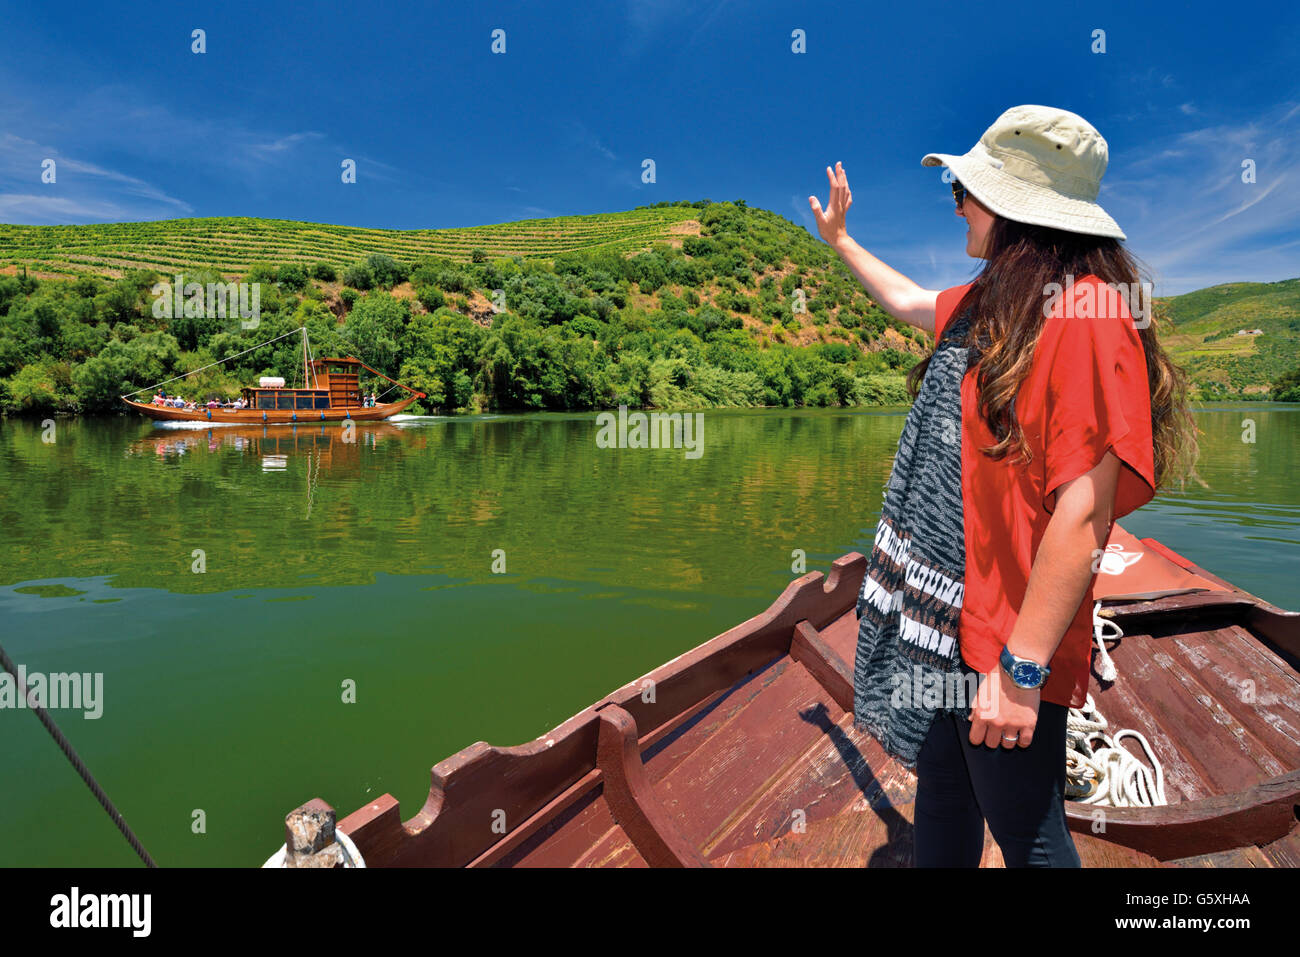 Portugal: Girl with hat in traditional Rabelo boat greeting other boat on river Douro Tour Stock Photo